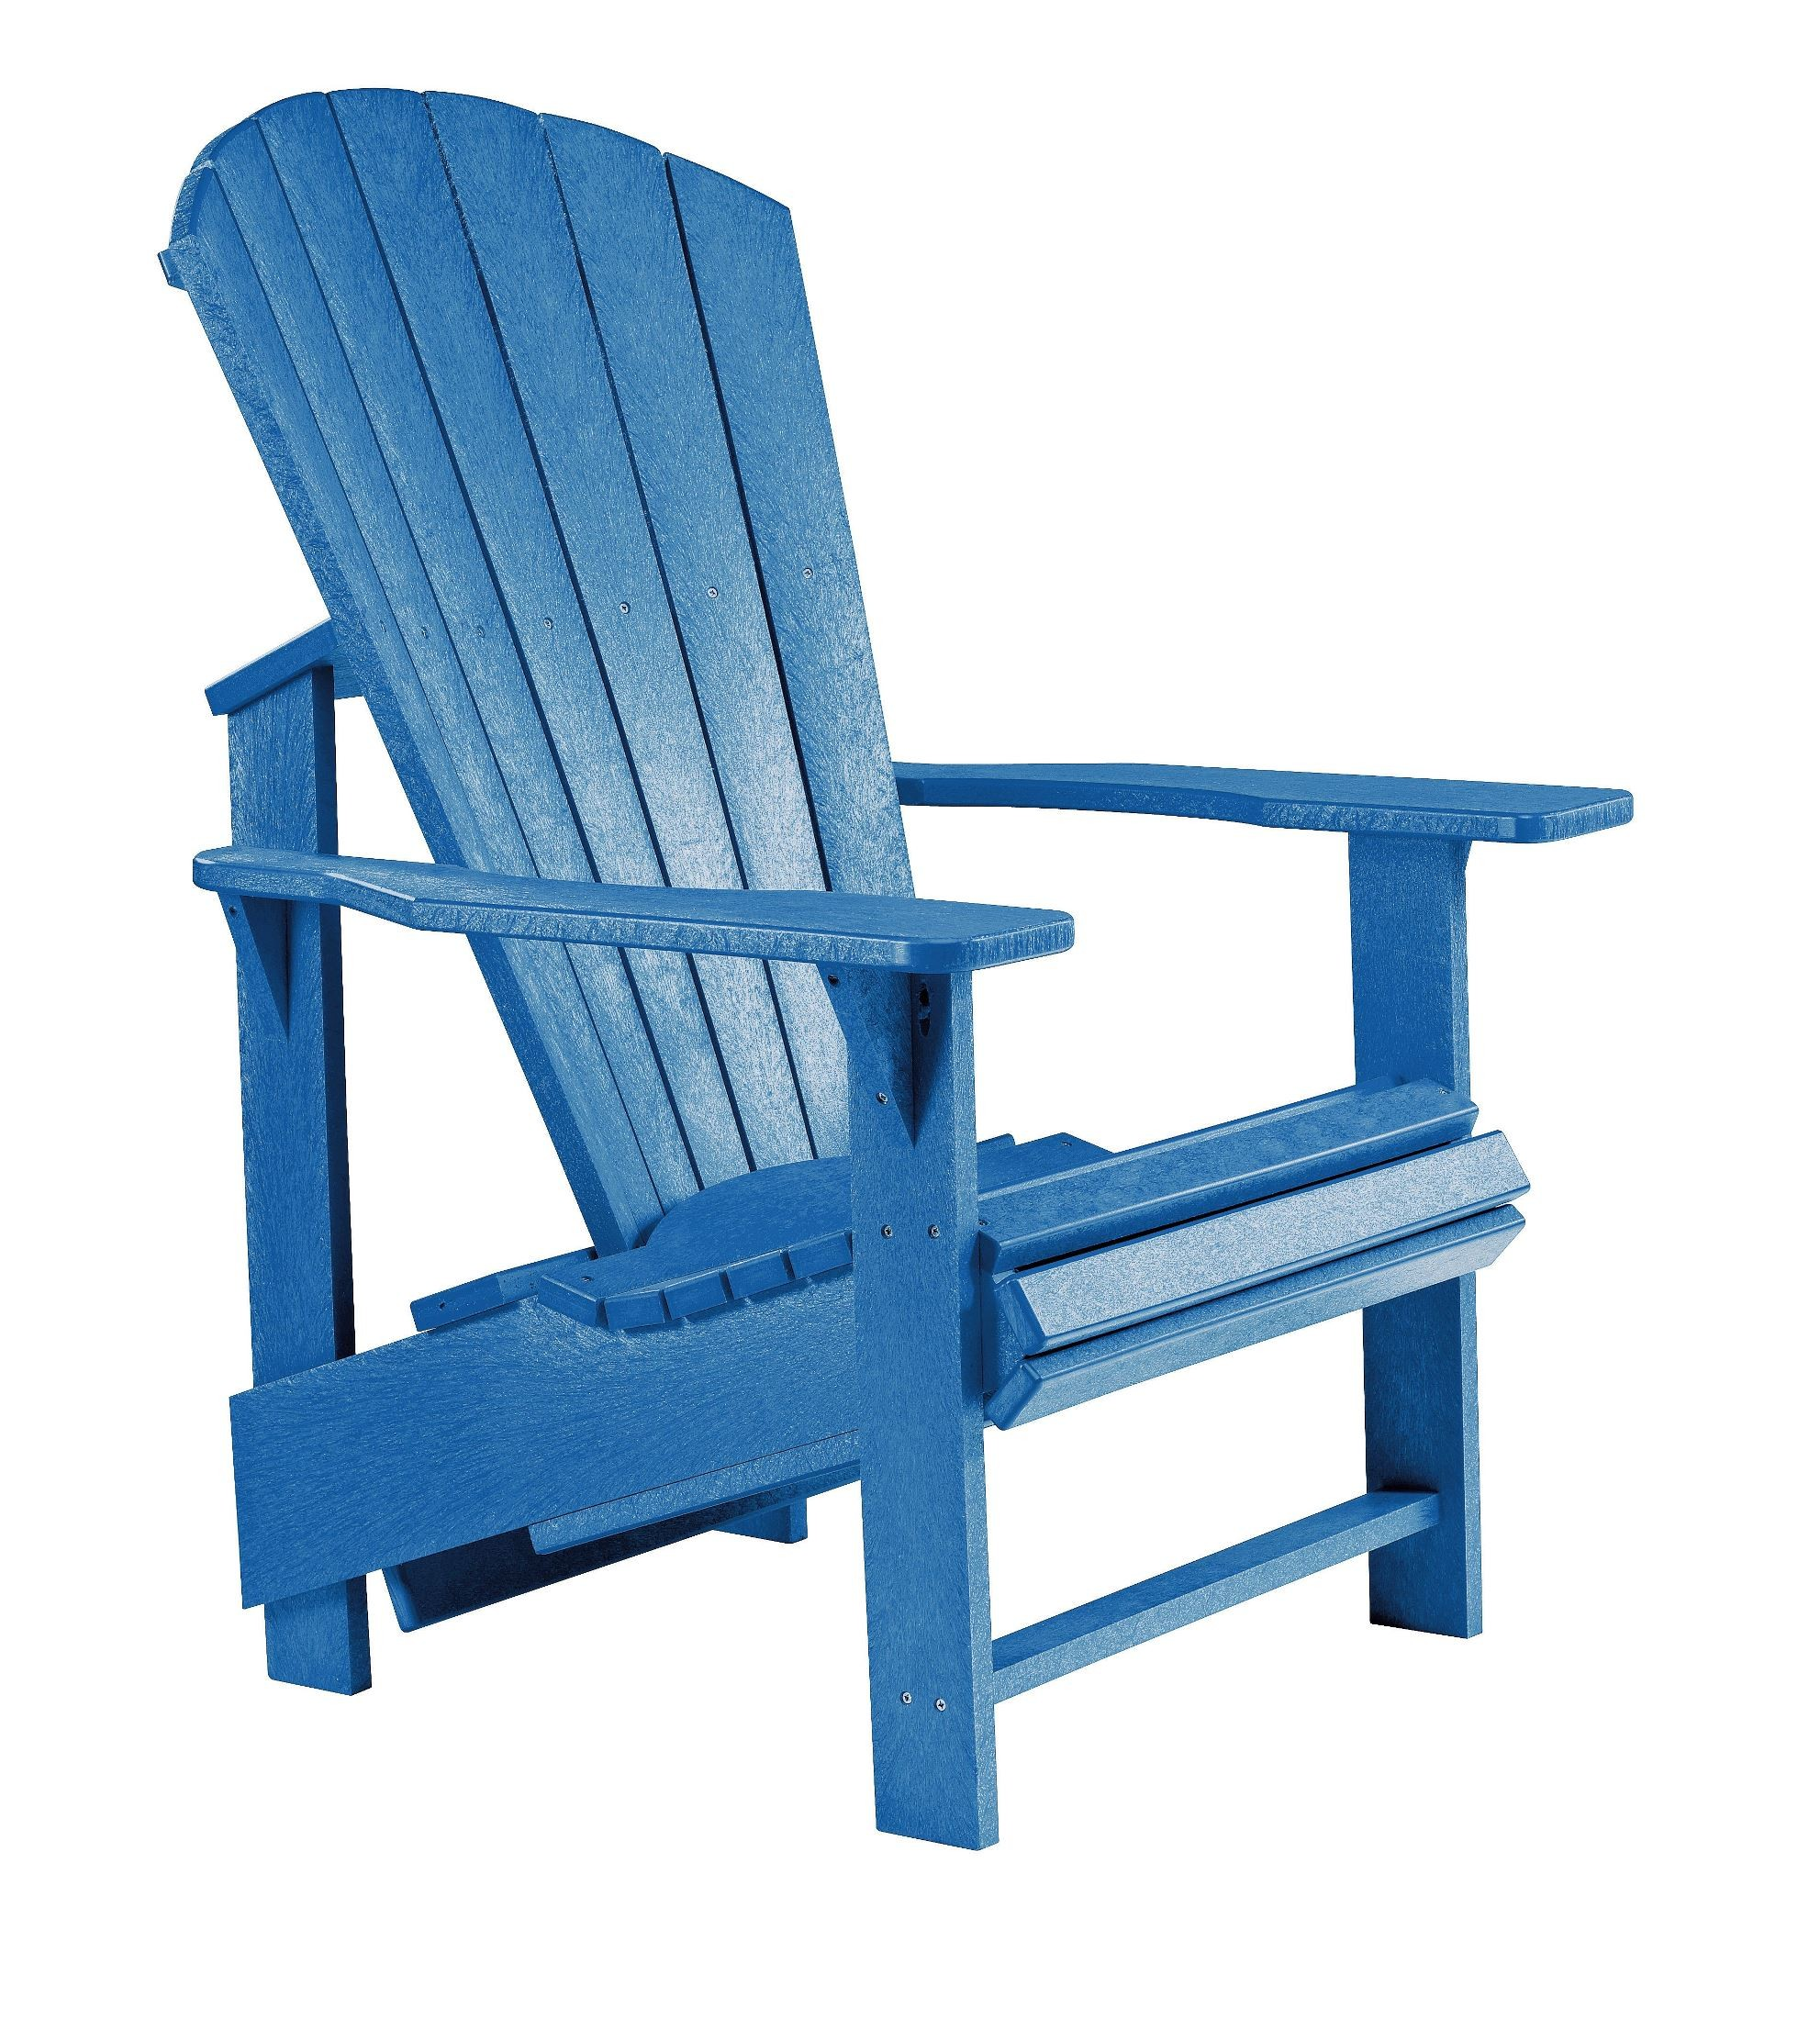 Generations Blue Upright Adirondack Chair from CR Plastic